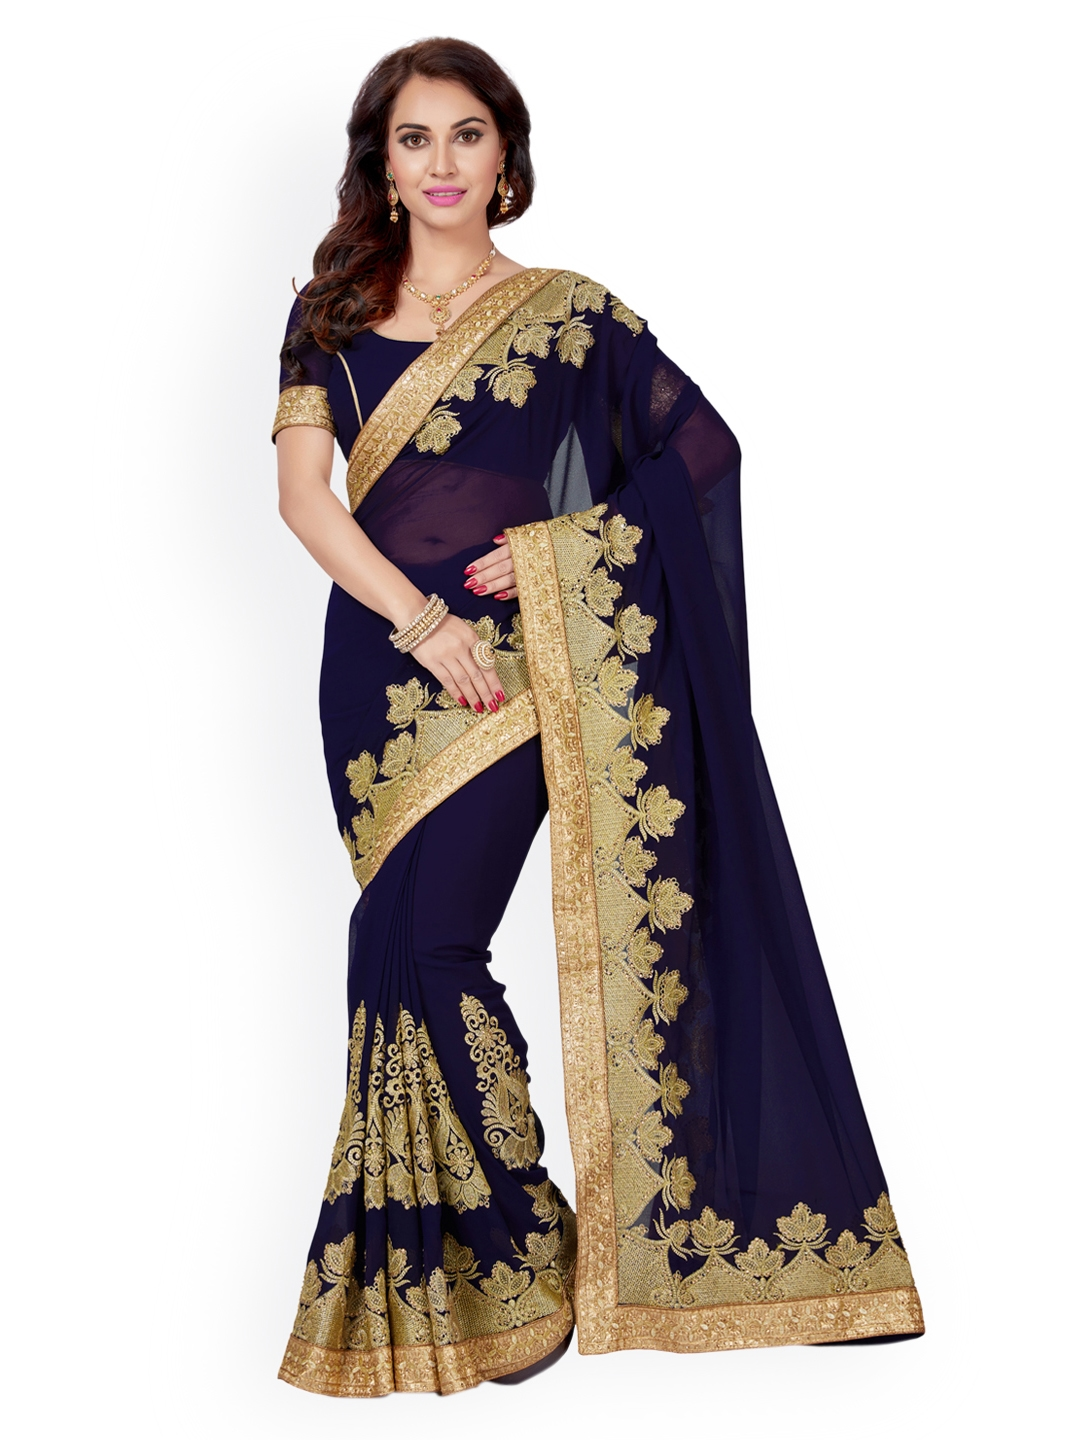 8708f5cce3 Buy Saree Swarg Navy Blue & Gold Toned Poly Georgette Embroidered ...